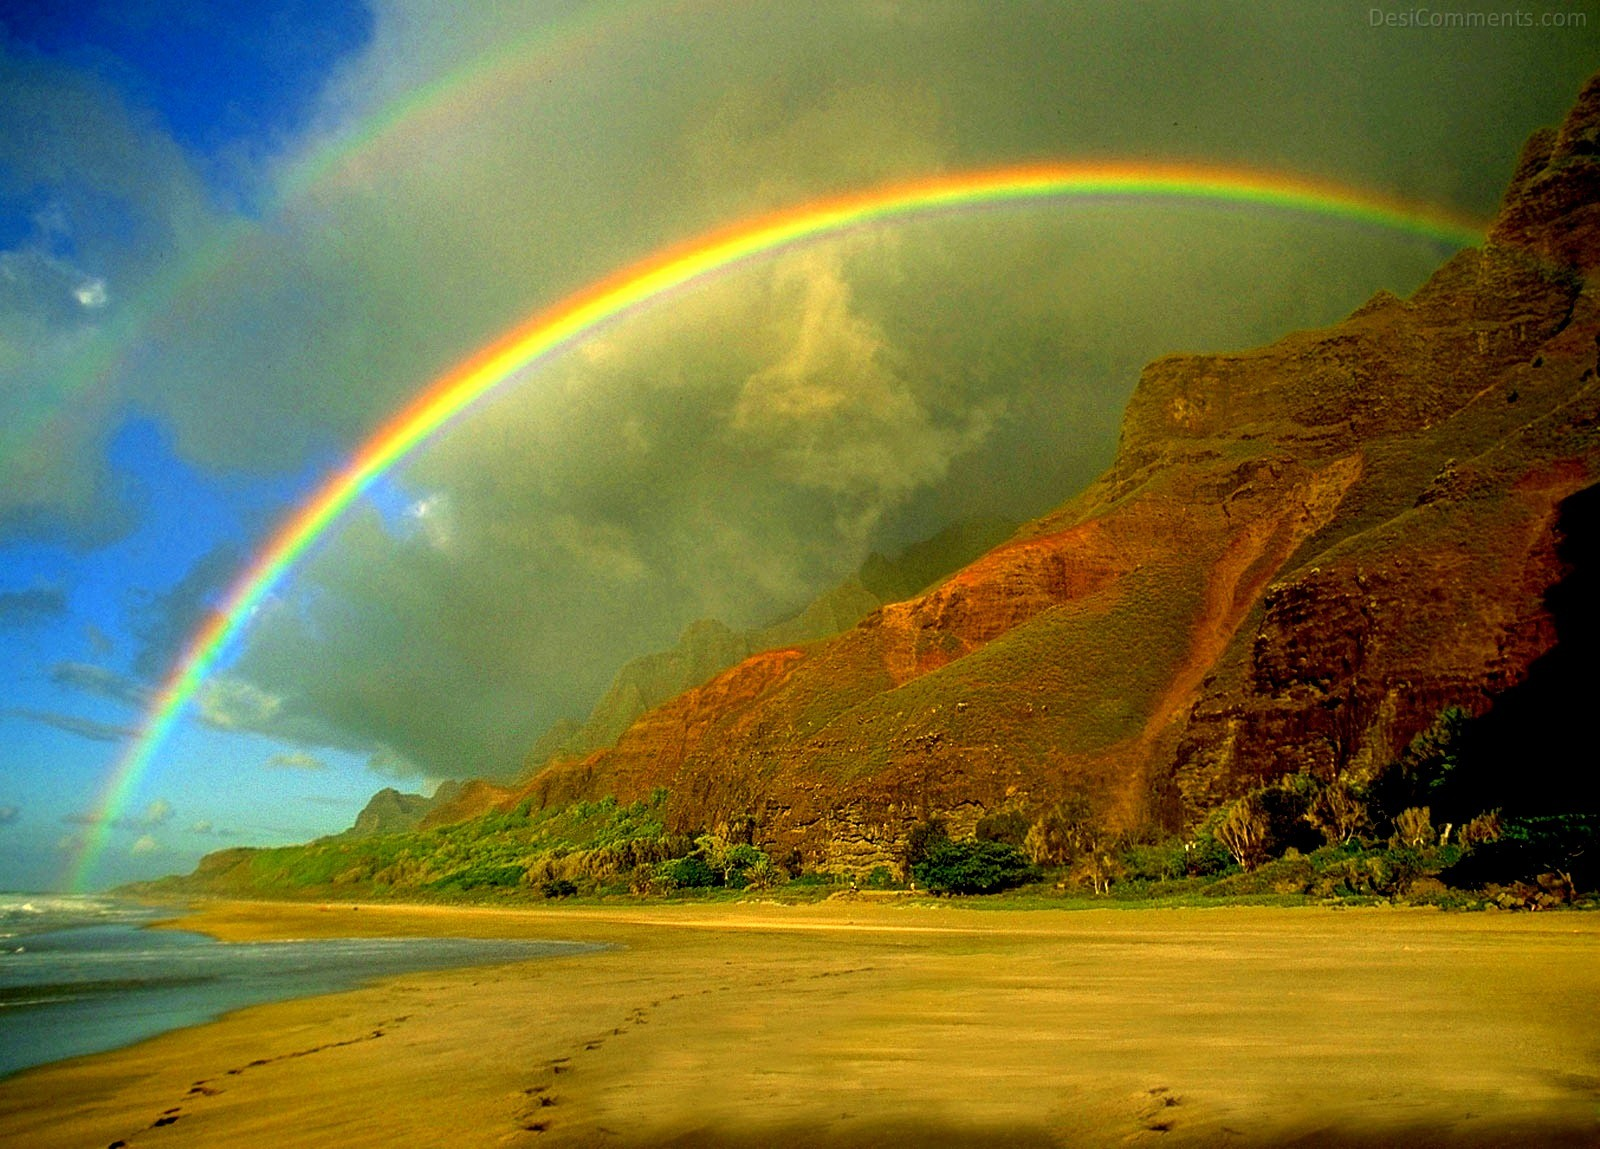 Beautiful Rainbow Nature Mountain - DesiComments.com Rainbowsol